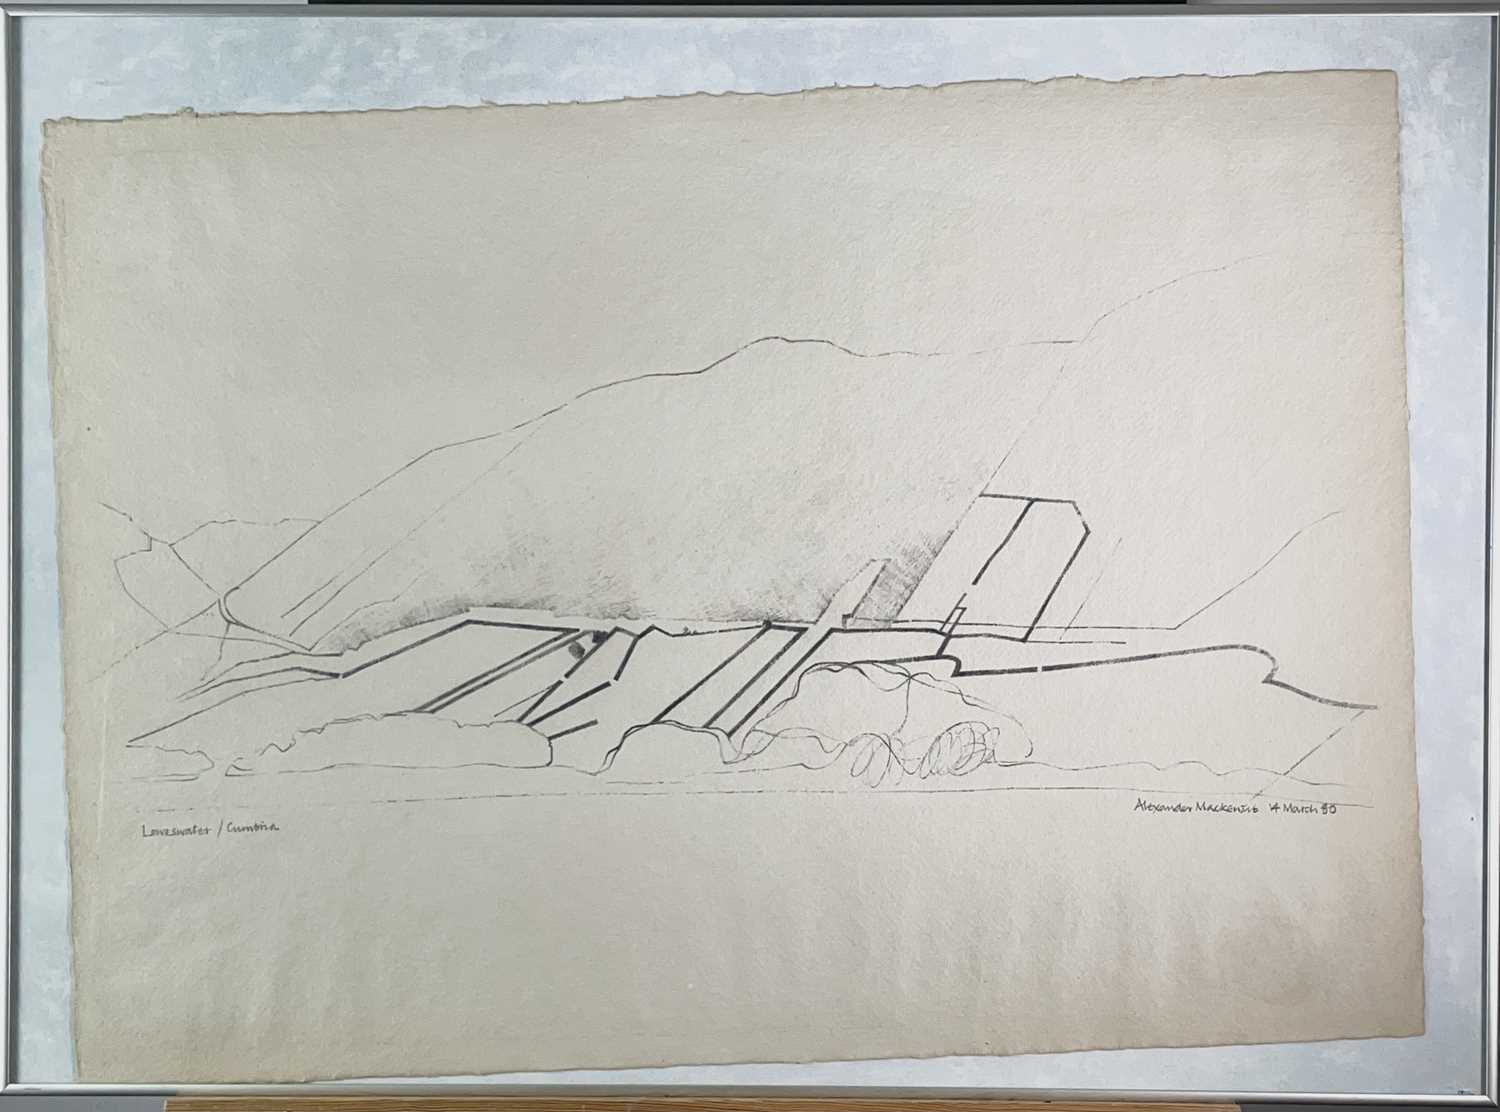 Alexander MACKENZIE (1923-2002) Loweswater, Cumbria Pencil drawing Signed, inscribed and dated 14 - Image 3 of 3